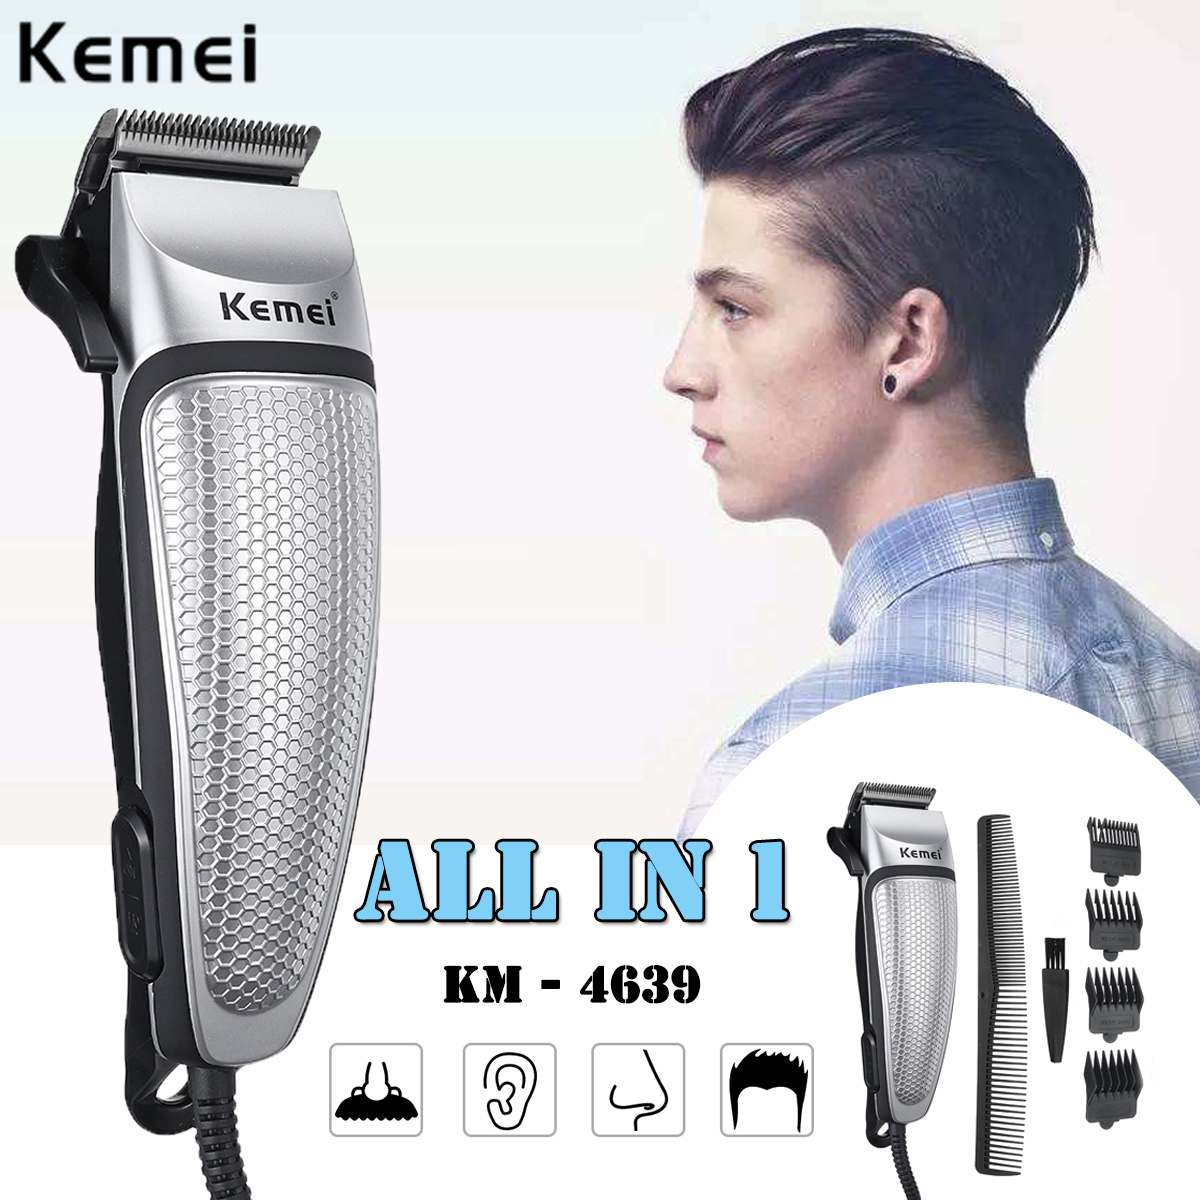 Kemei 9 In 1 Electric Hair Clipper Plug-in Professional Hair Trimmer For Men Styling Tools Hair Shaving Machine Haircut Machine